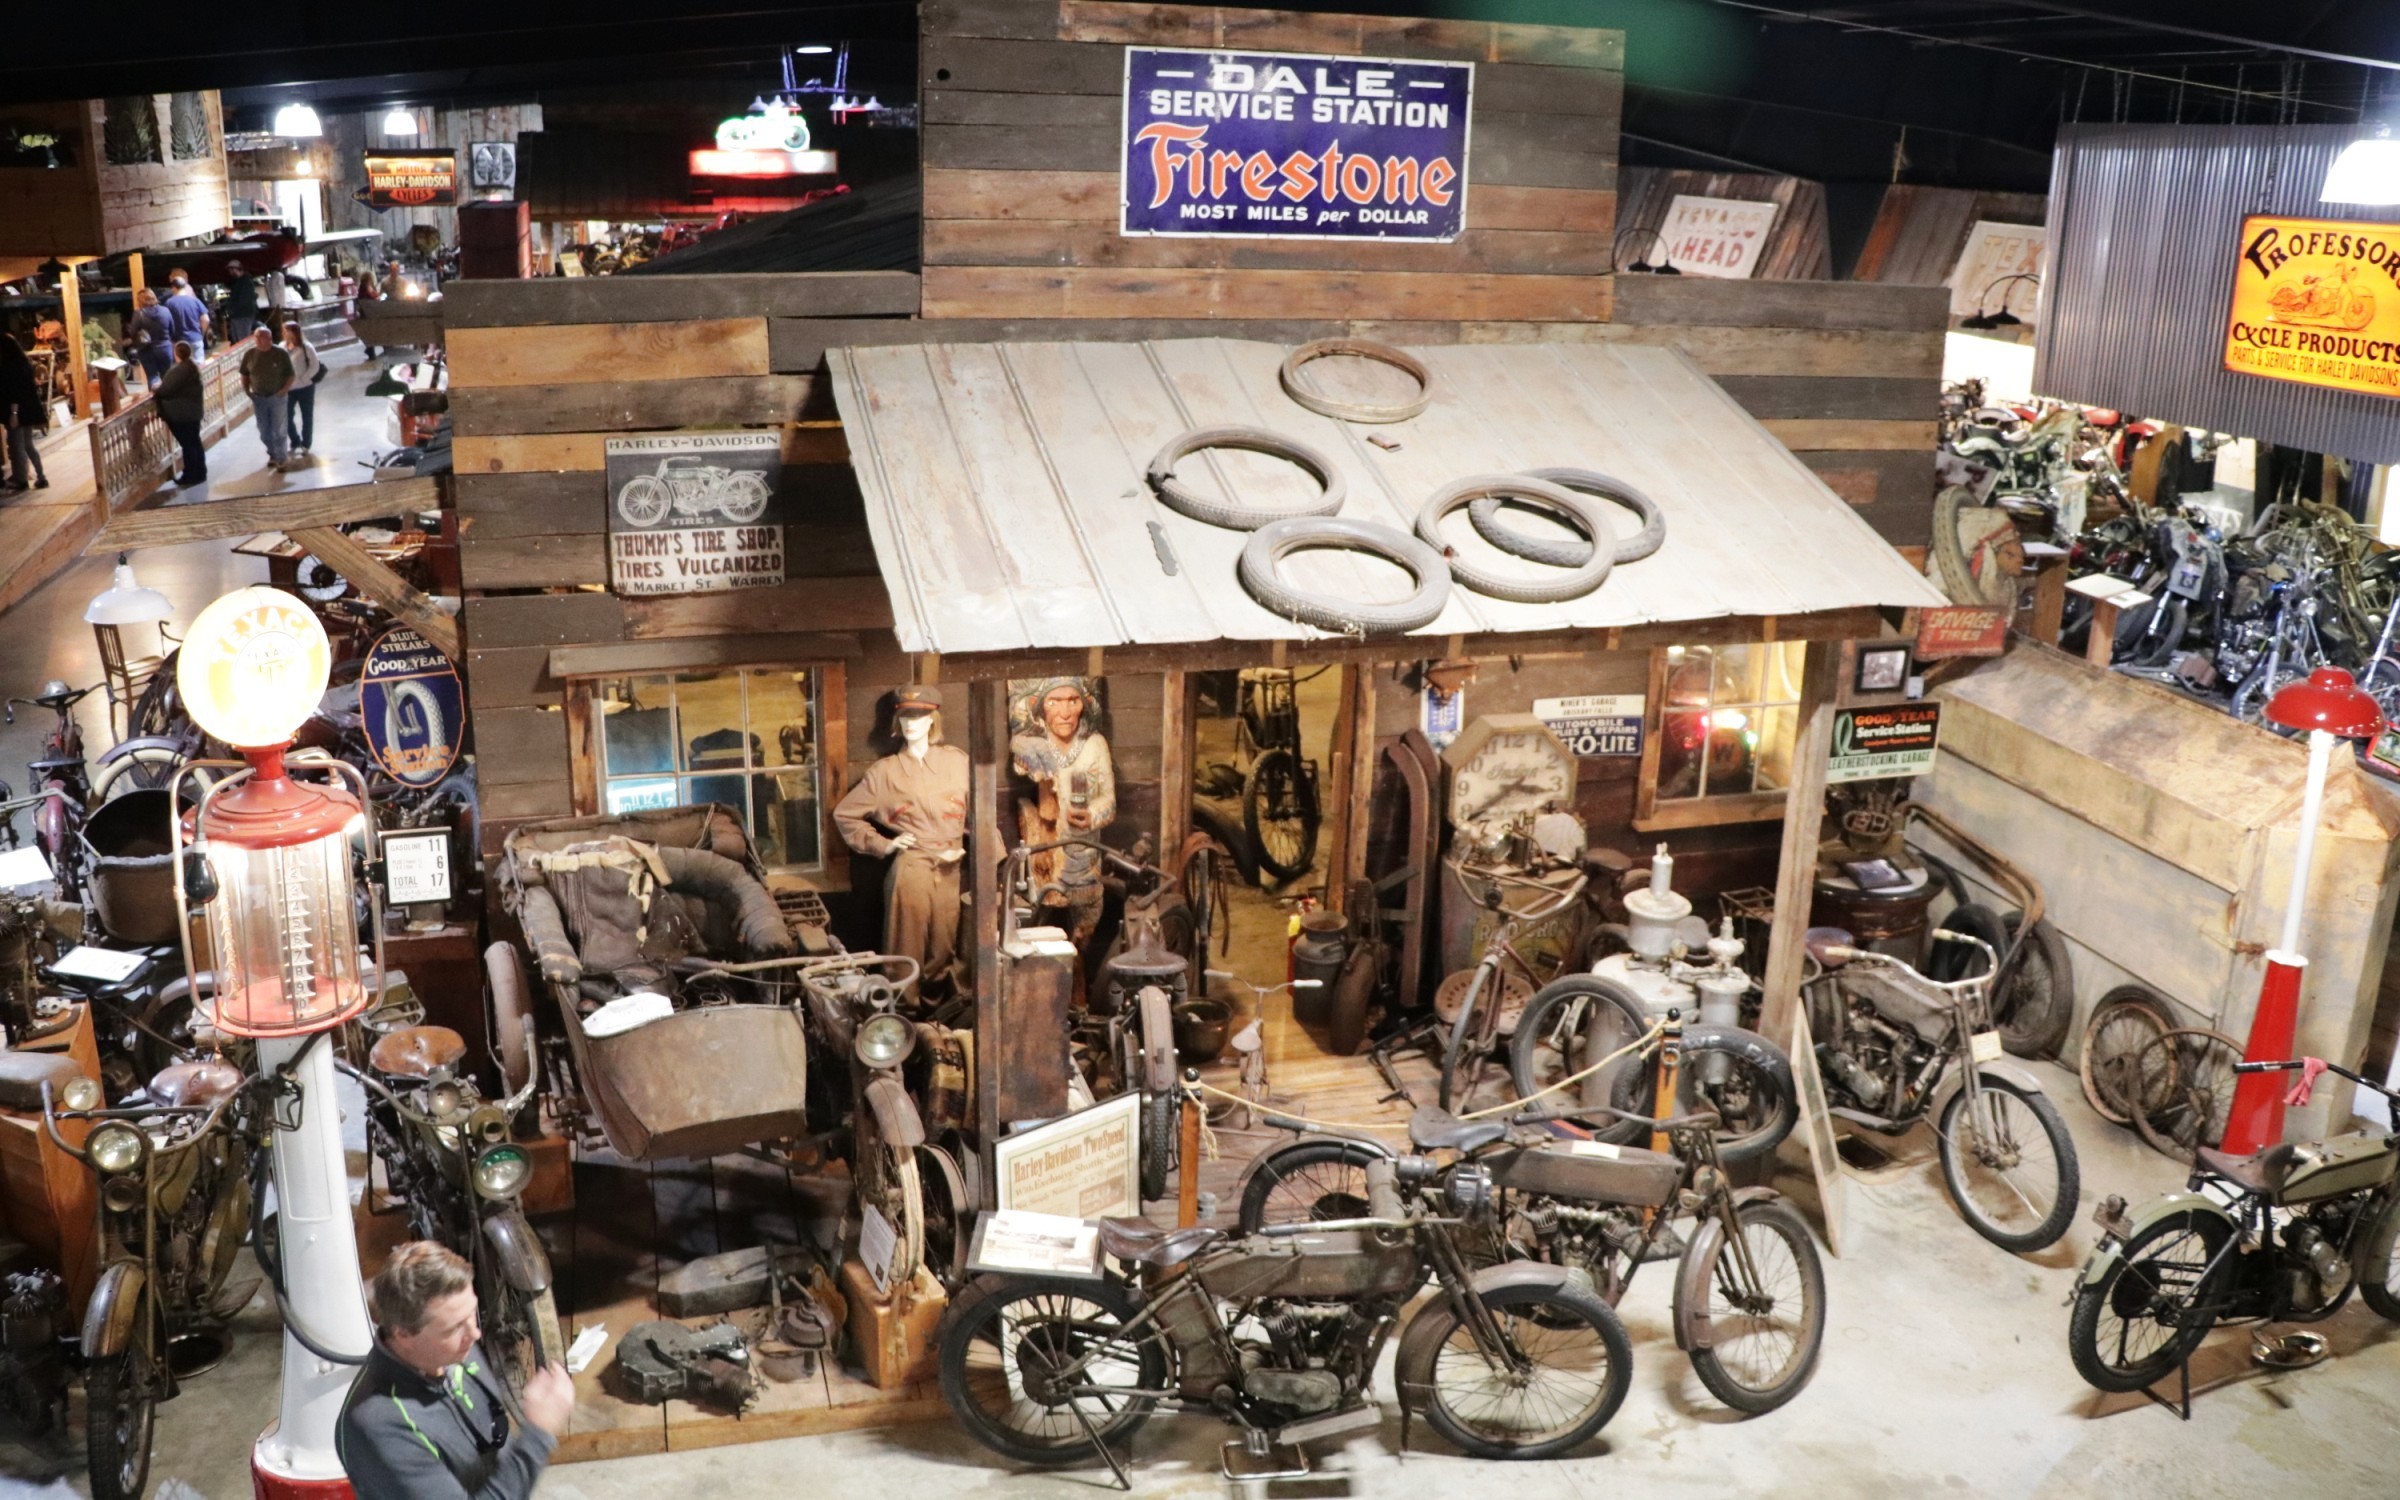 My five favorite motorcycles at Wheels Through Time Museum